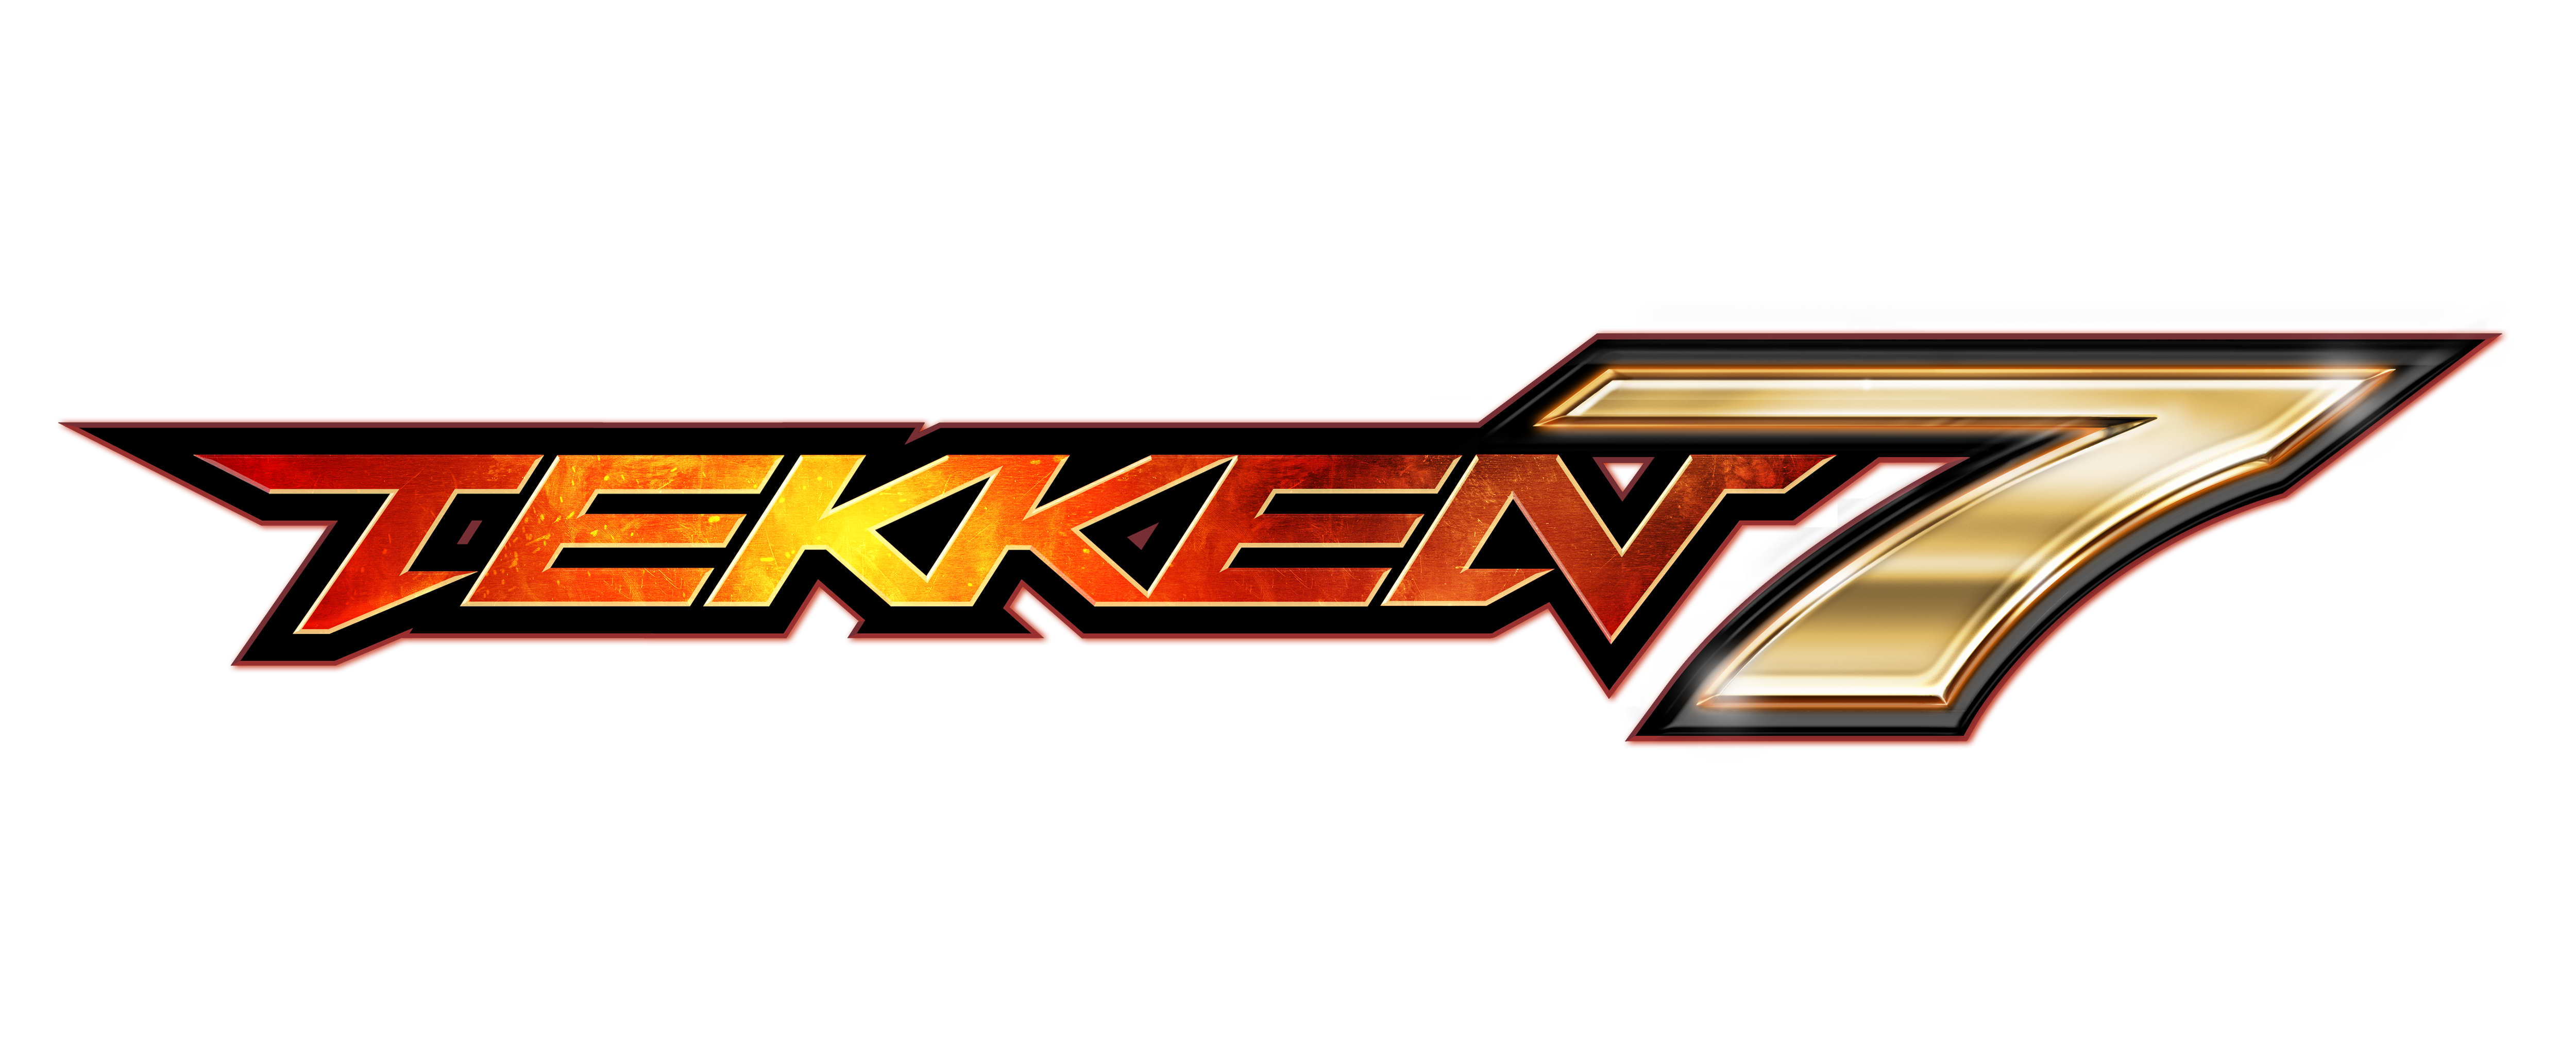 Tekken 7 Logo Png (104+ images in Collection) Page 1.